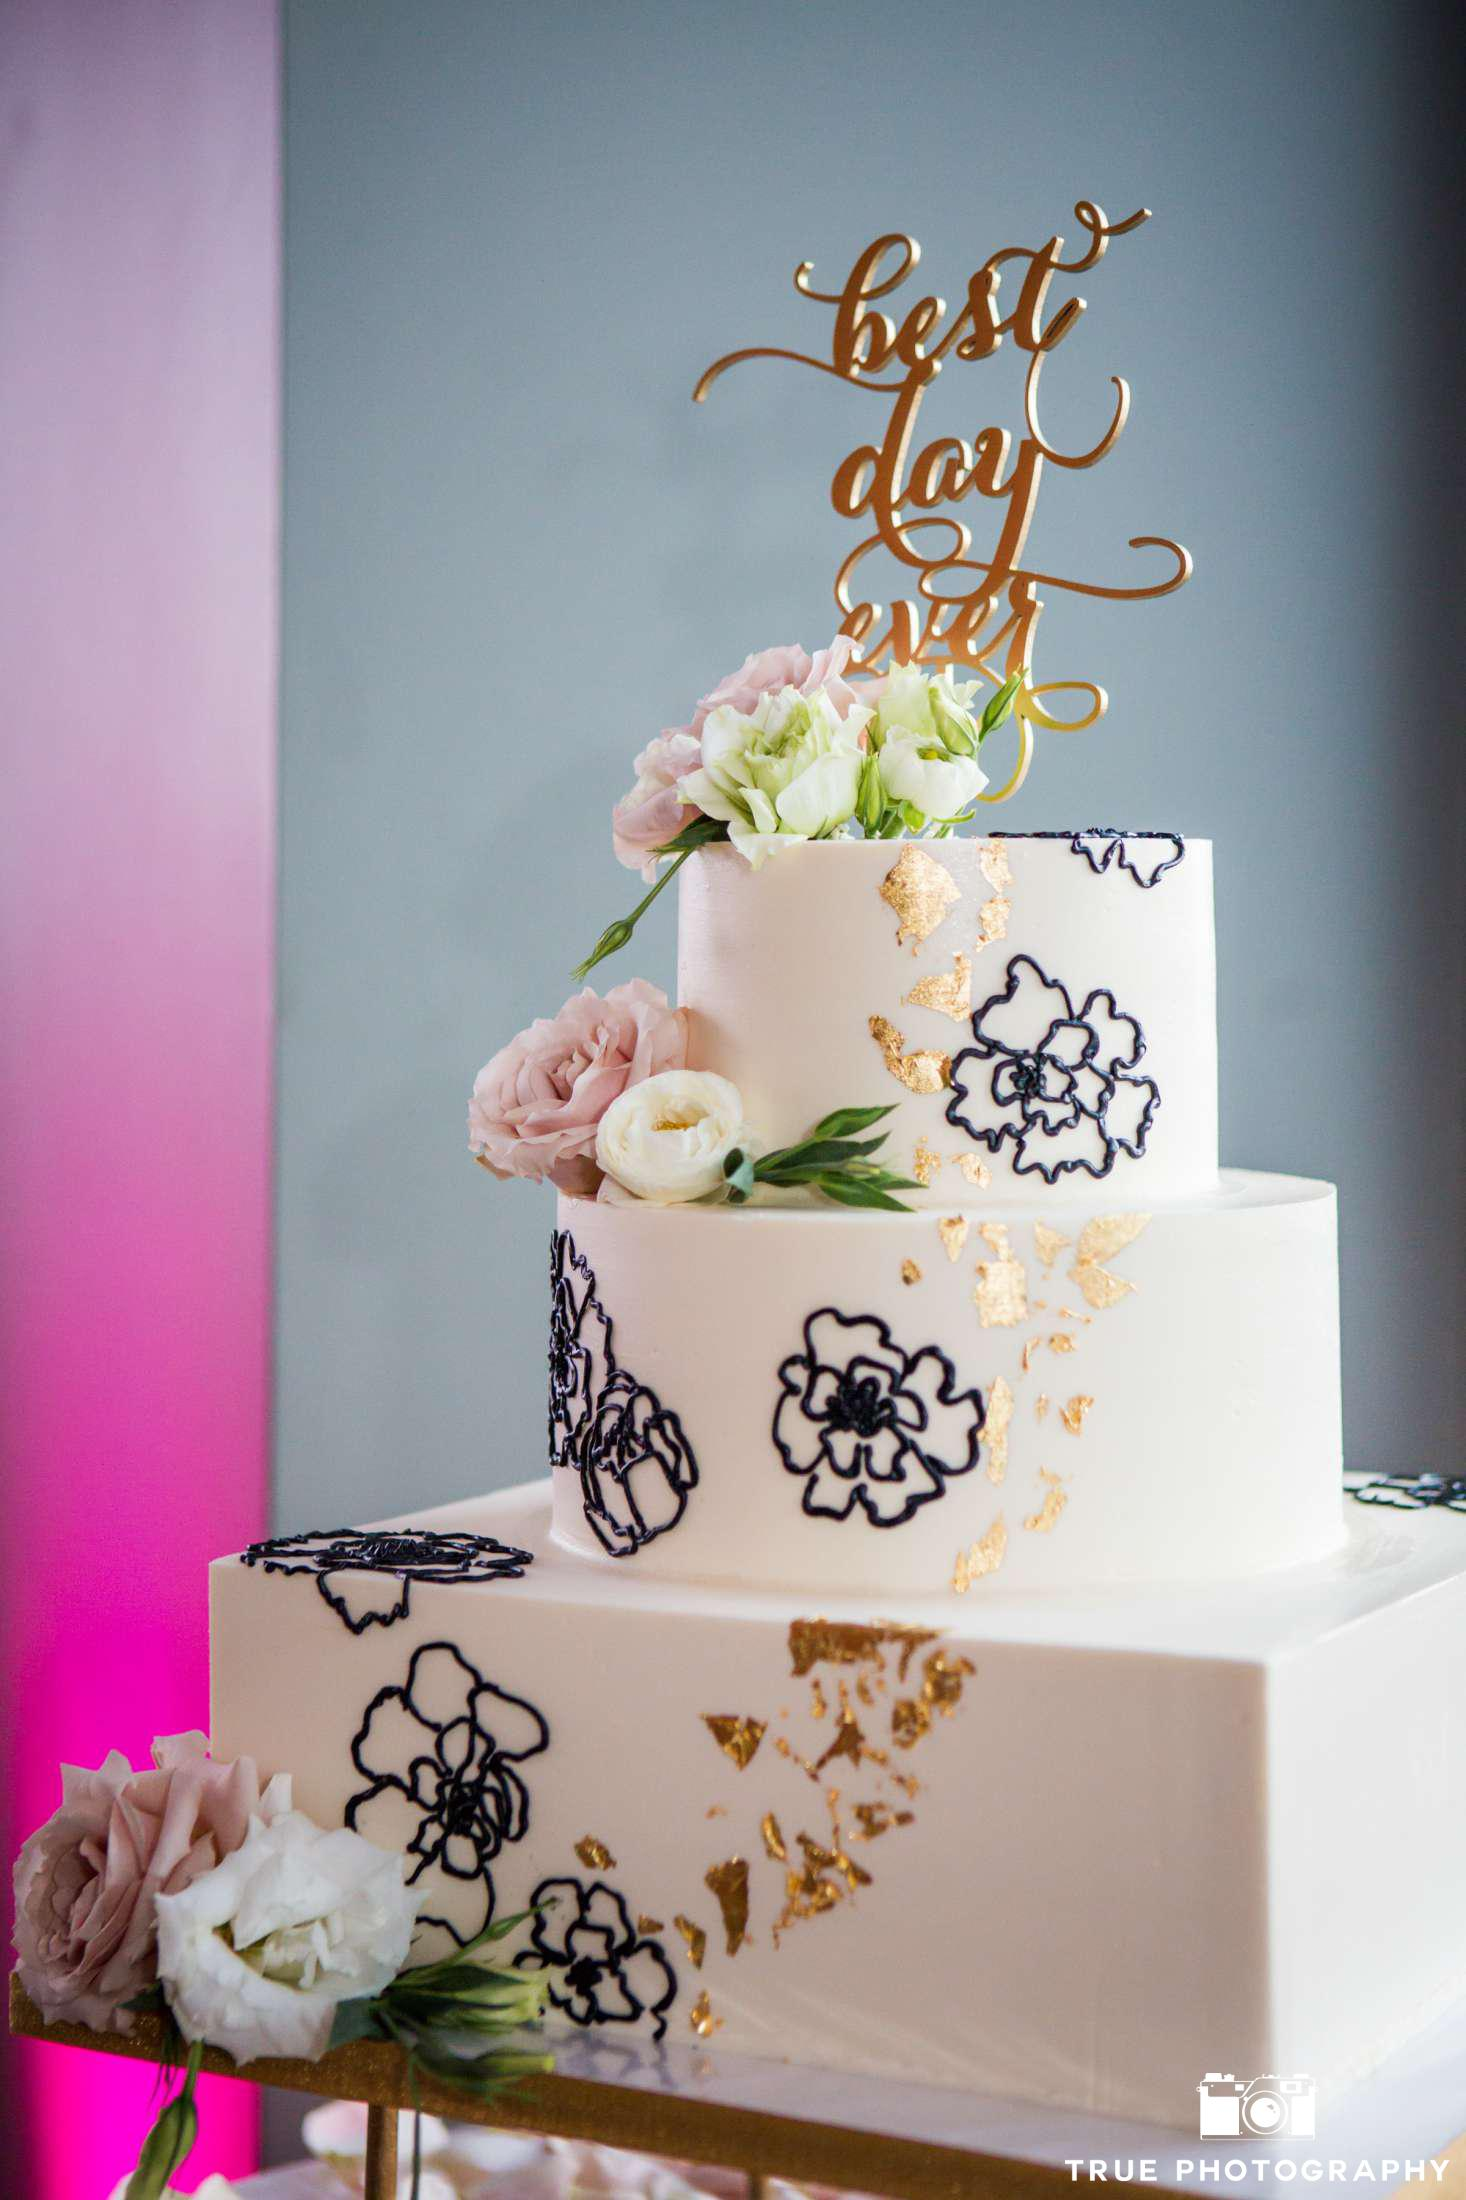 black-painted-flowers-gold-leaf-wedding-cake-for-samantha_daniel-sweet-cheeks-at-ultimate-skybox-true-photography